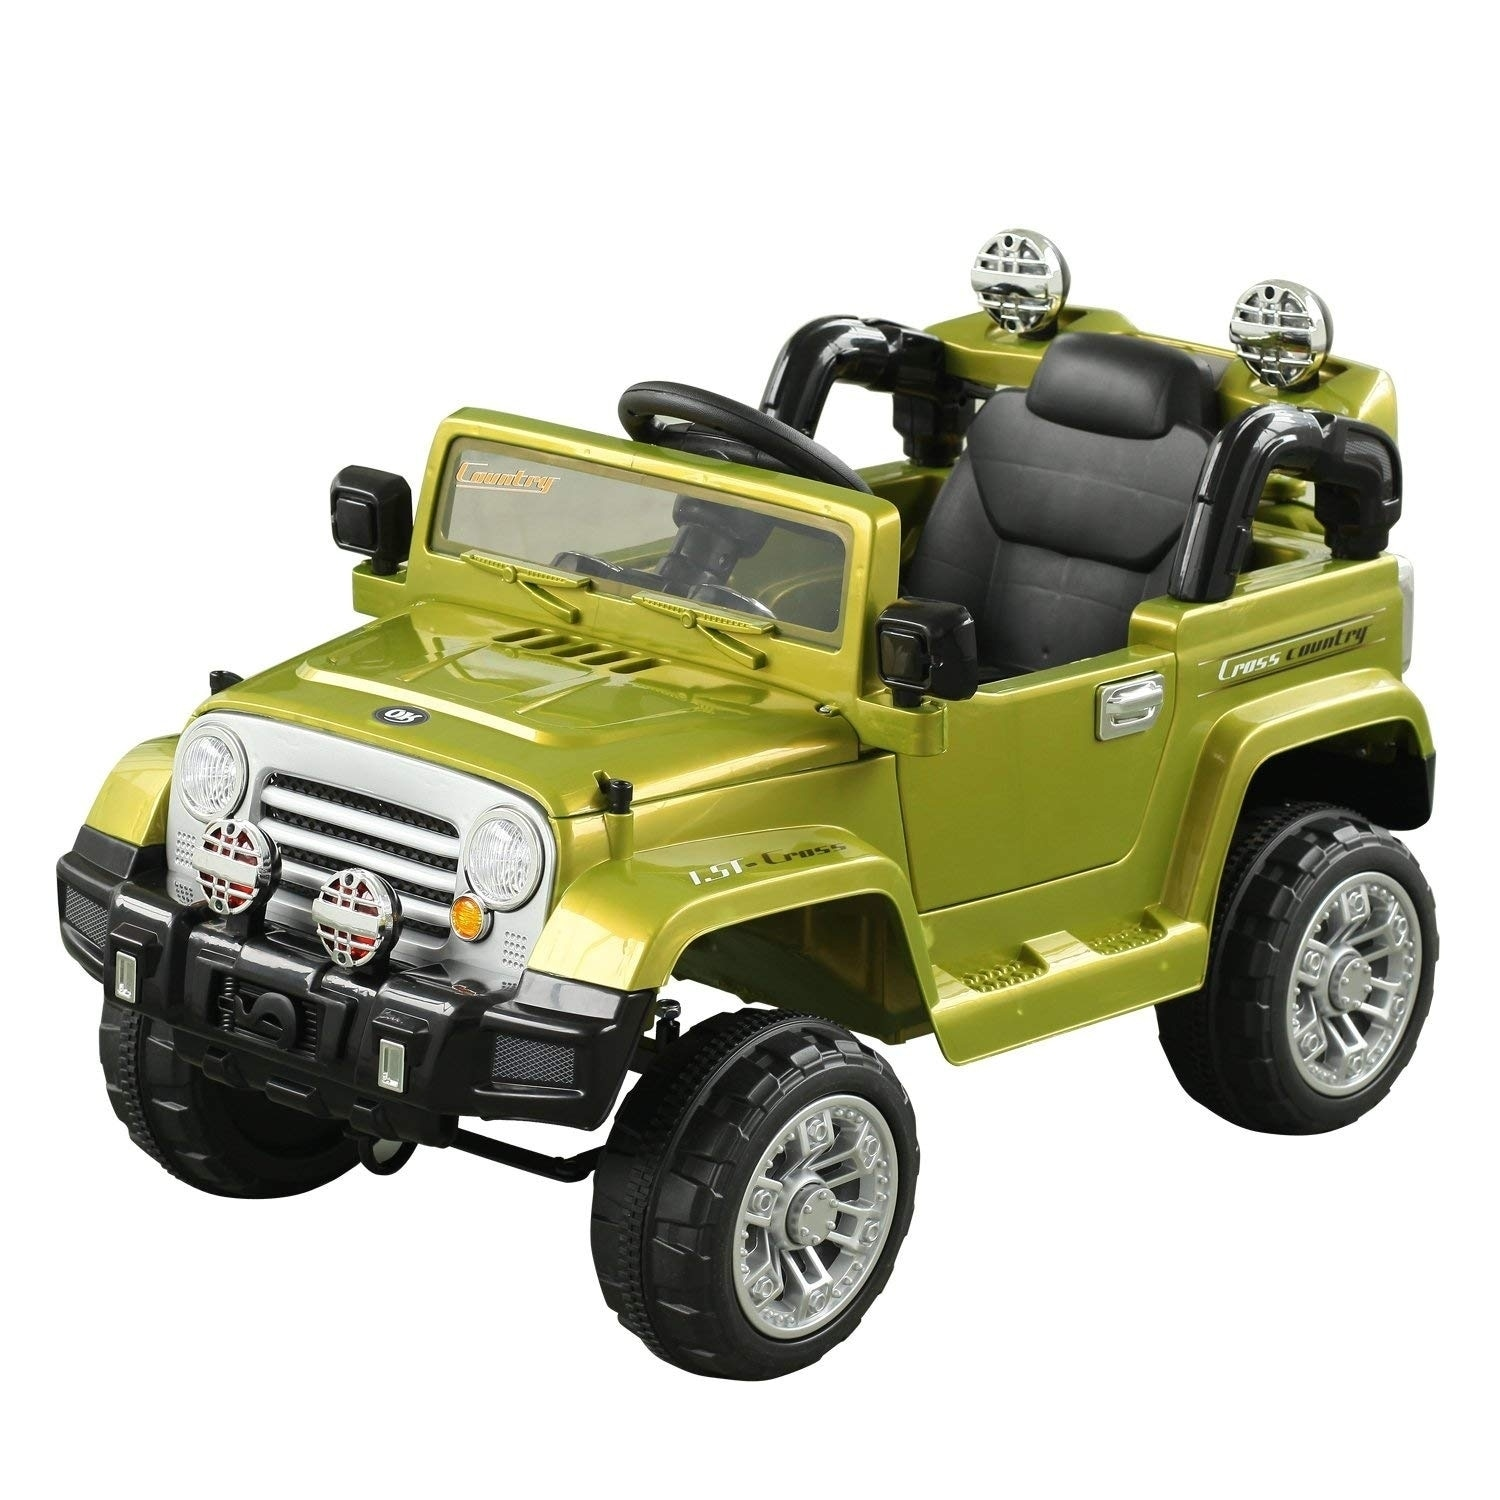 Aosom 12v Kids Electric Battery Ride On Toy Off Road Car Truck With Remote Control Green